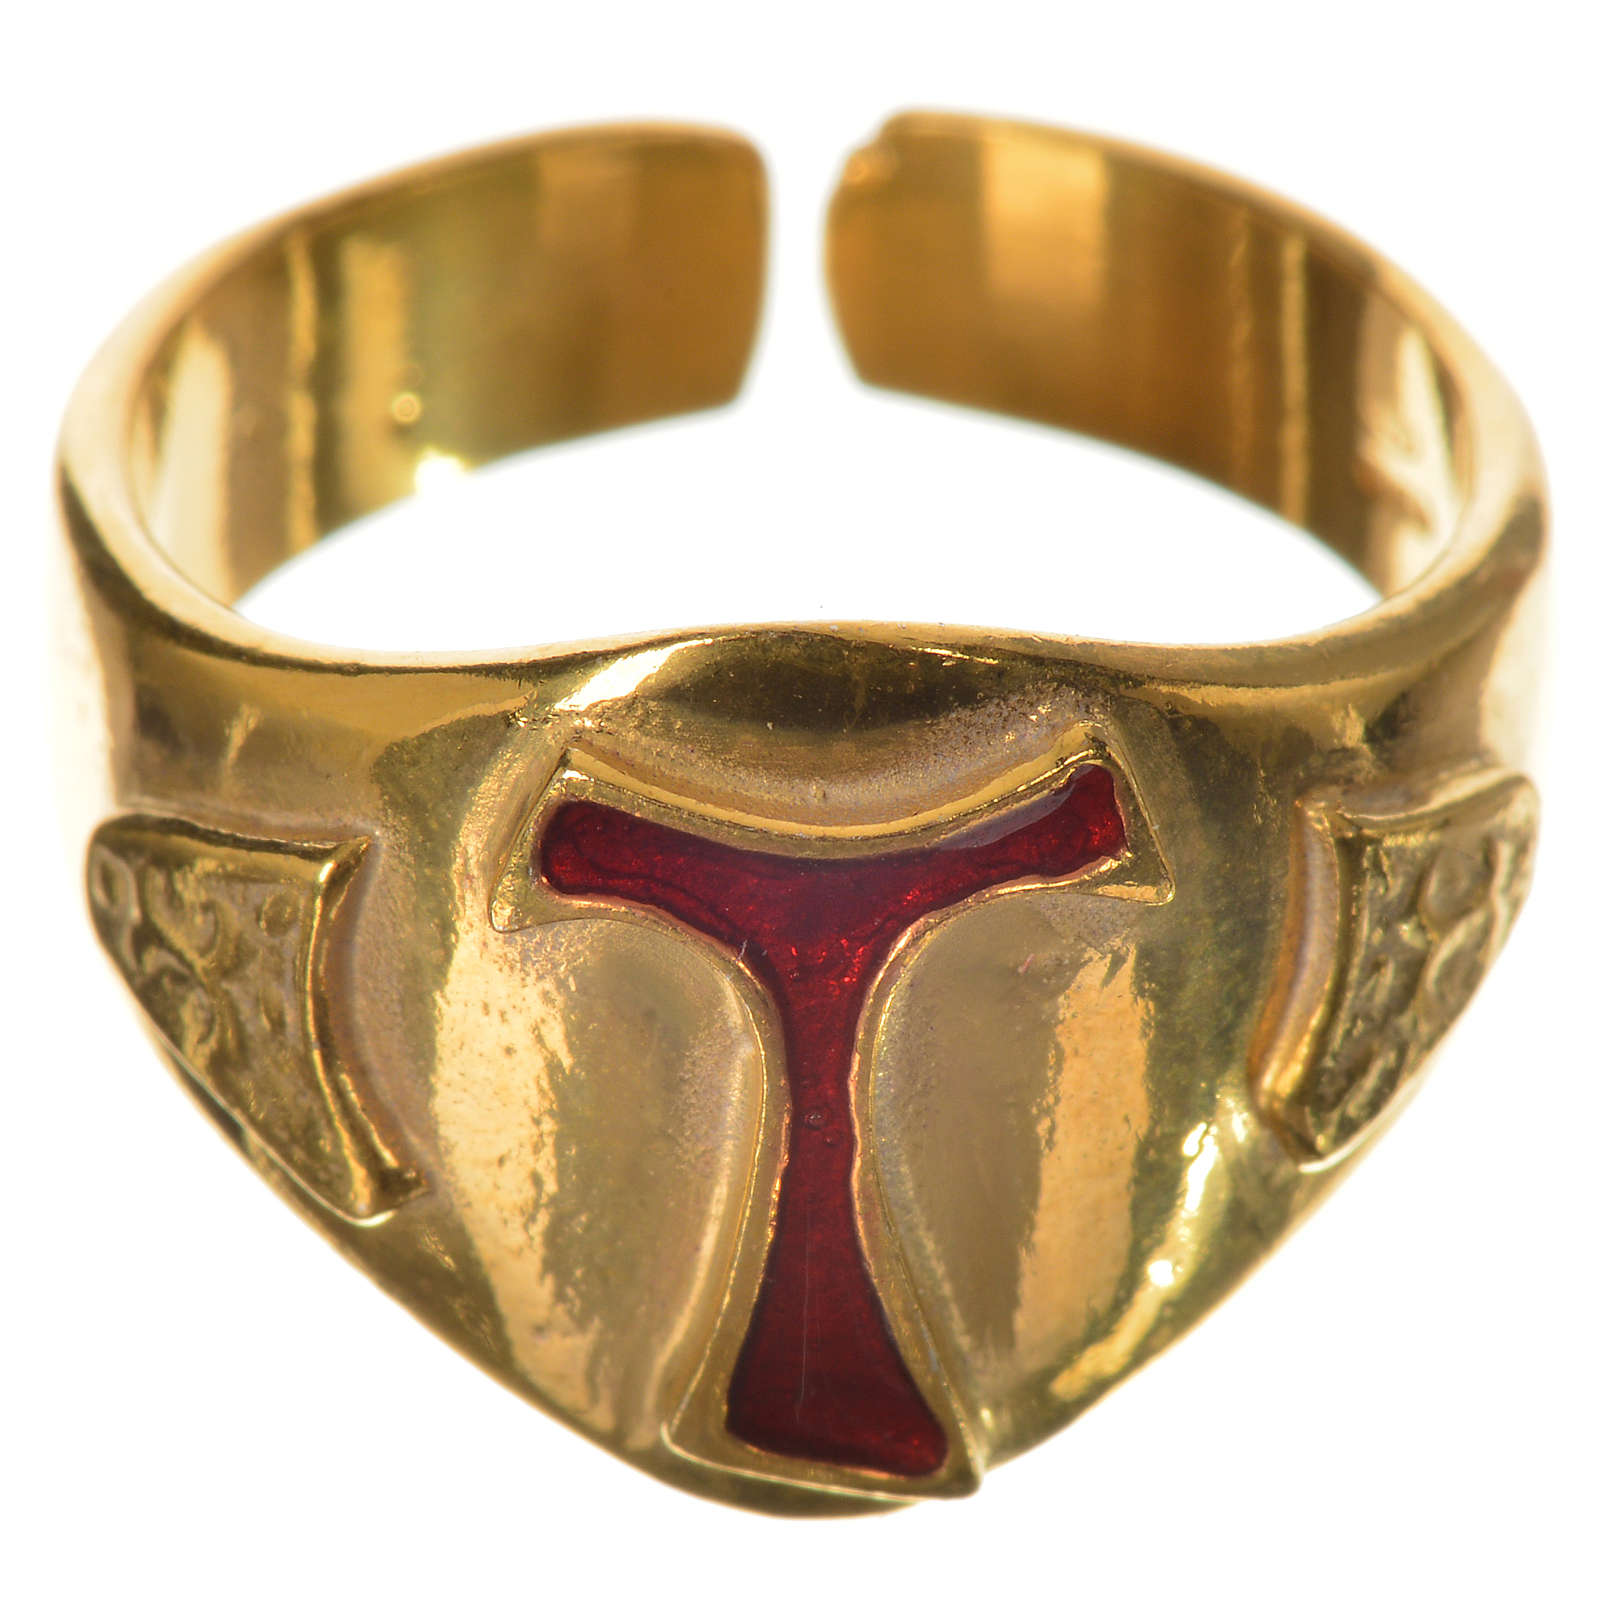 Bishop's ring, golden 925 silver with enamelled Tau 3